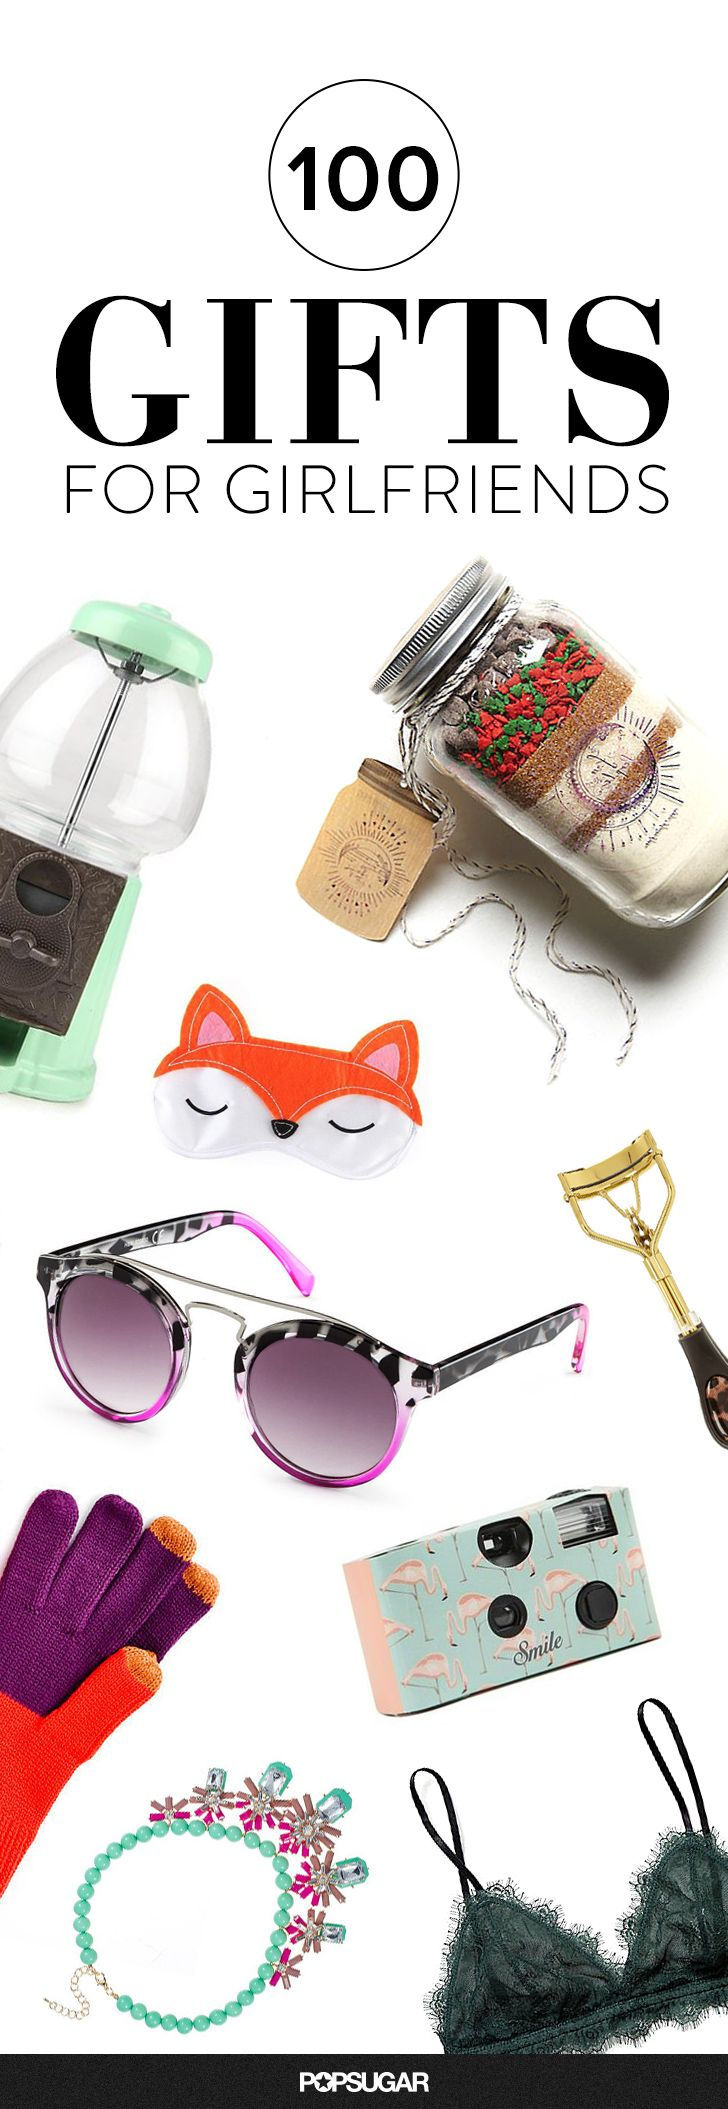 Gift ideas for your girlfriends!